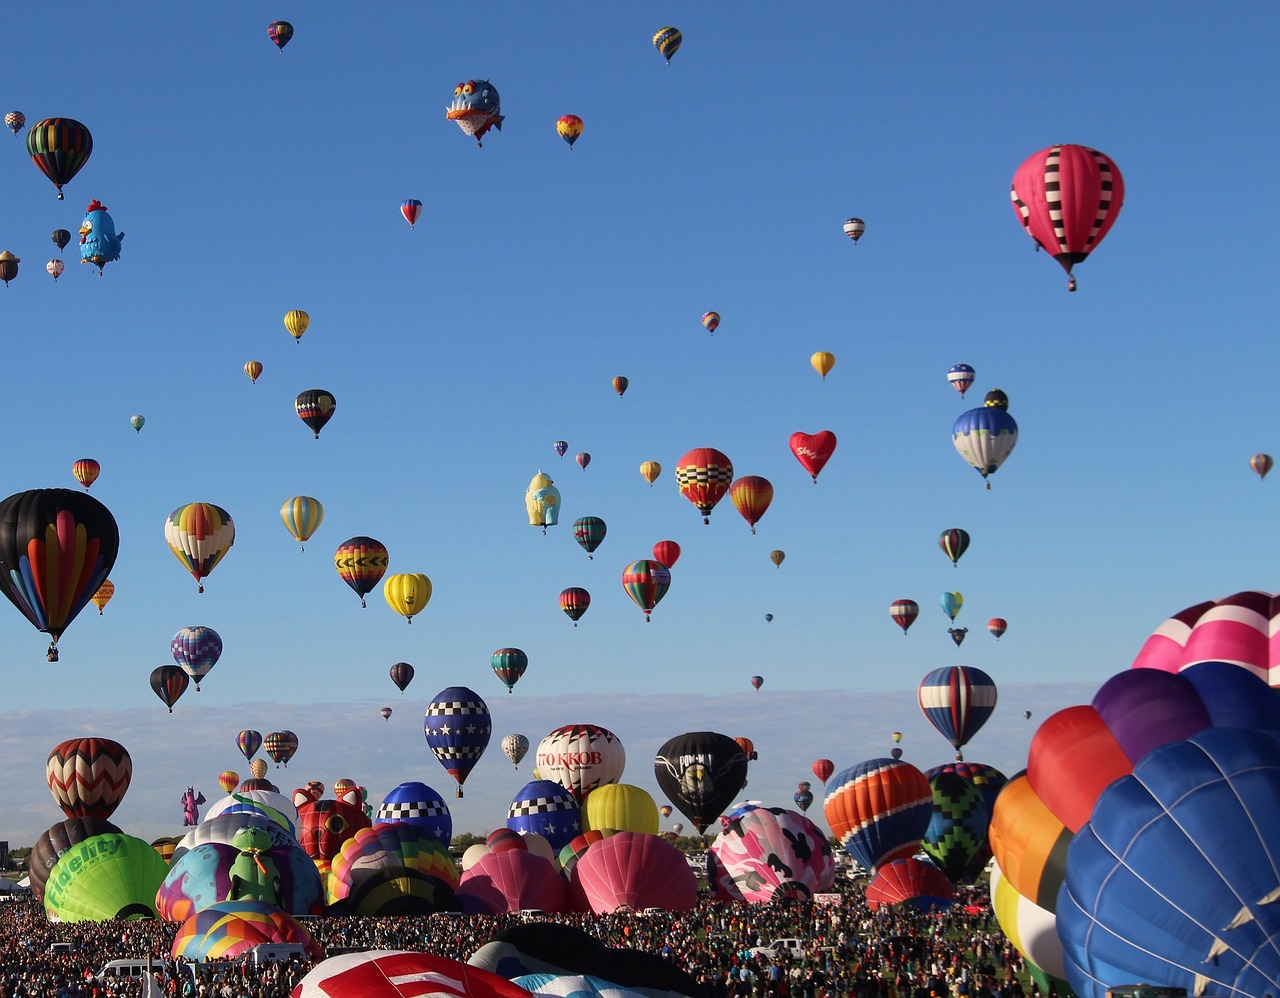 colorful hot air balloons taking off and floating in the blue sky at an outdoor festival